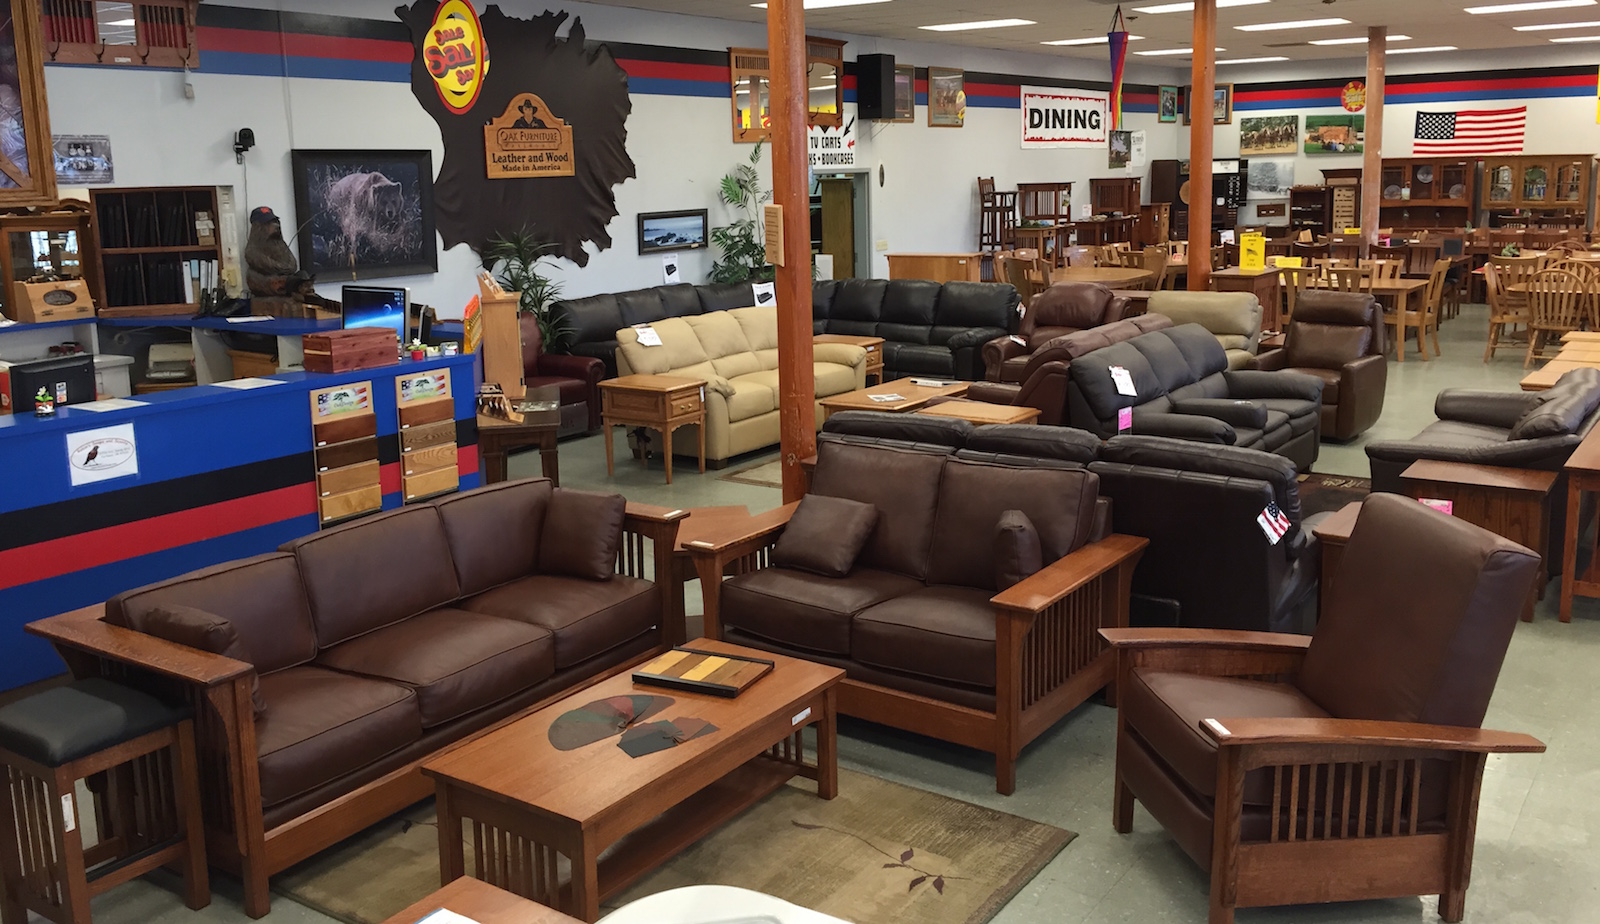 Import furniture from china to the us icontainers for Furniture warehouse